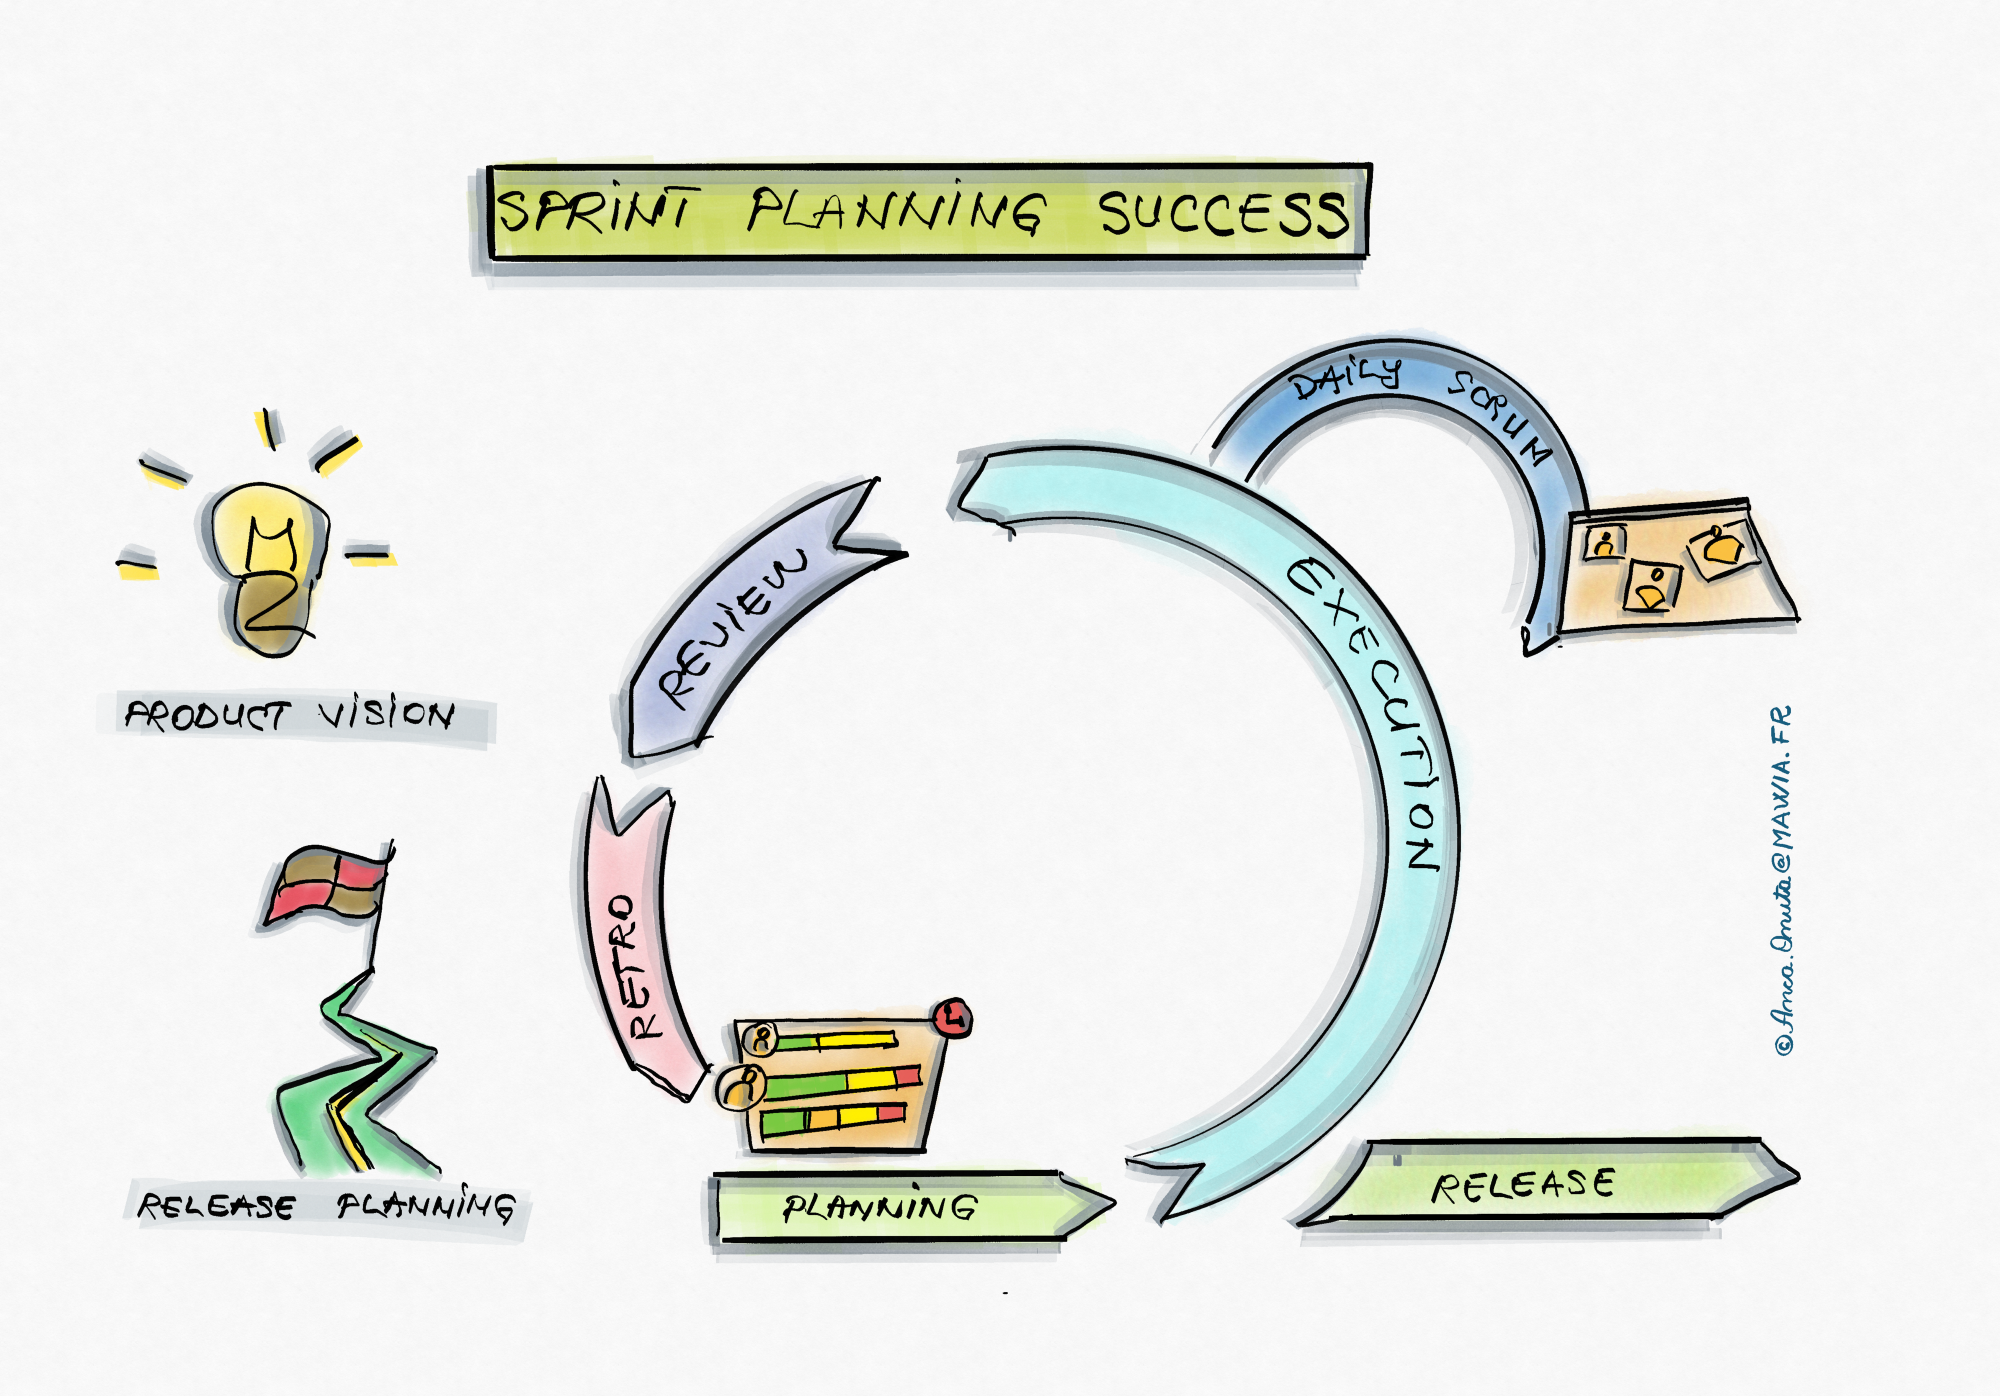 Sprint Planning is part of Scrum process together with sprint execution, review and retrospective.